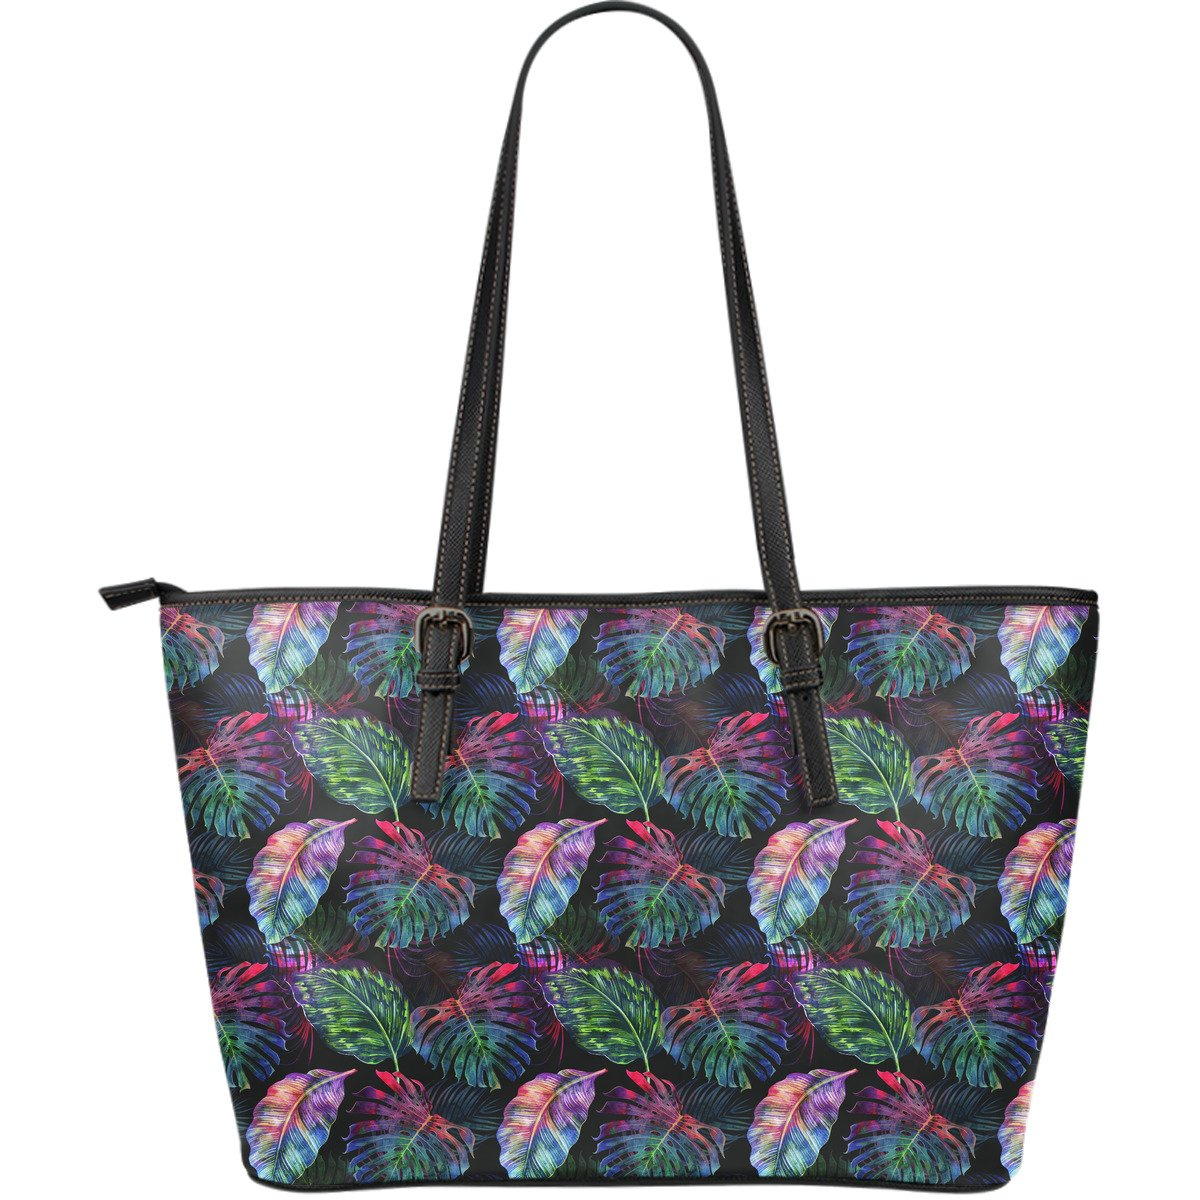 Colorful Tropical Leaves Pattern Print Leather Tote Bag GearFrost